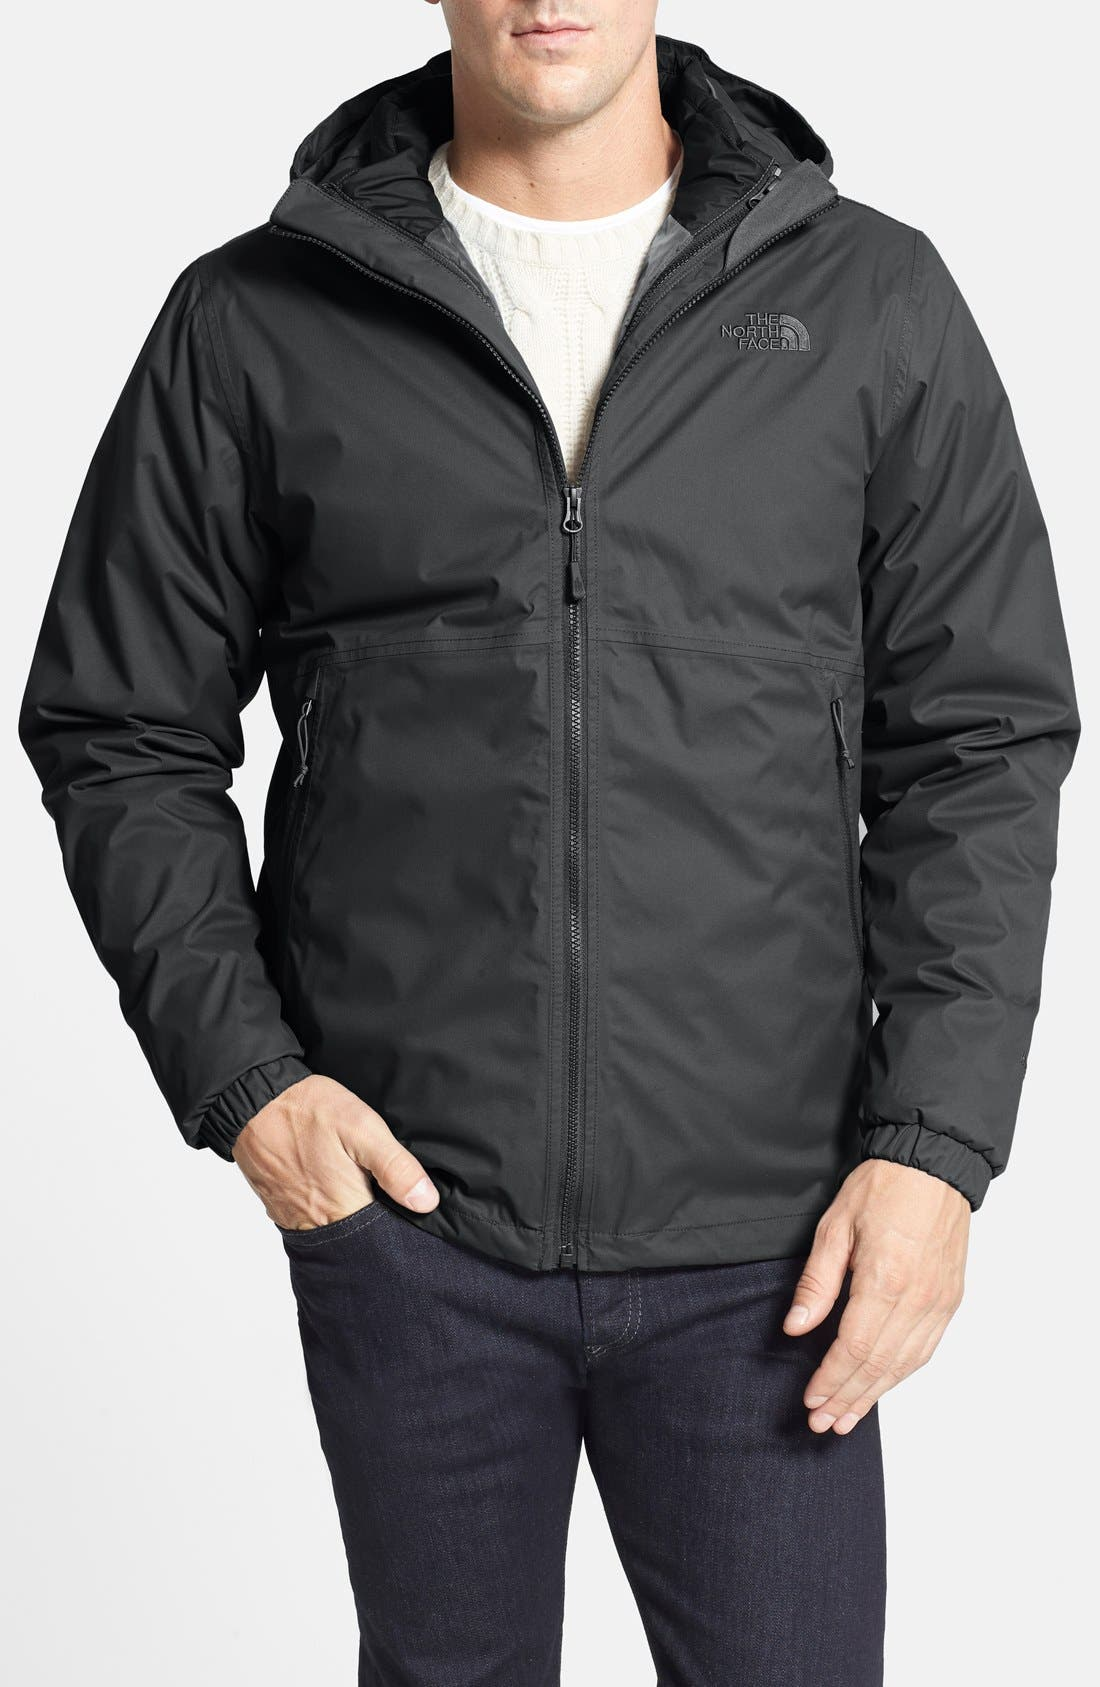 Main Image - The North Face 'All About' TriClimate® Waterproof Hooded 3-in-1 HyVent® Jacket